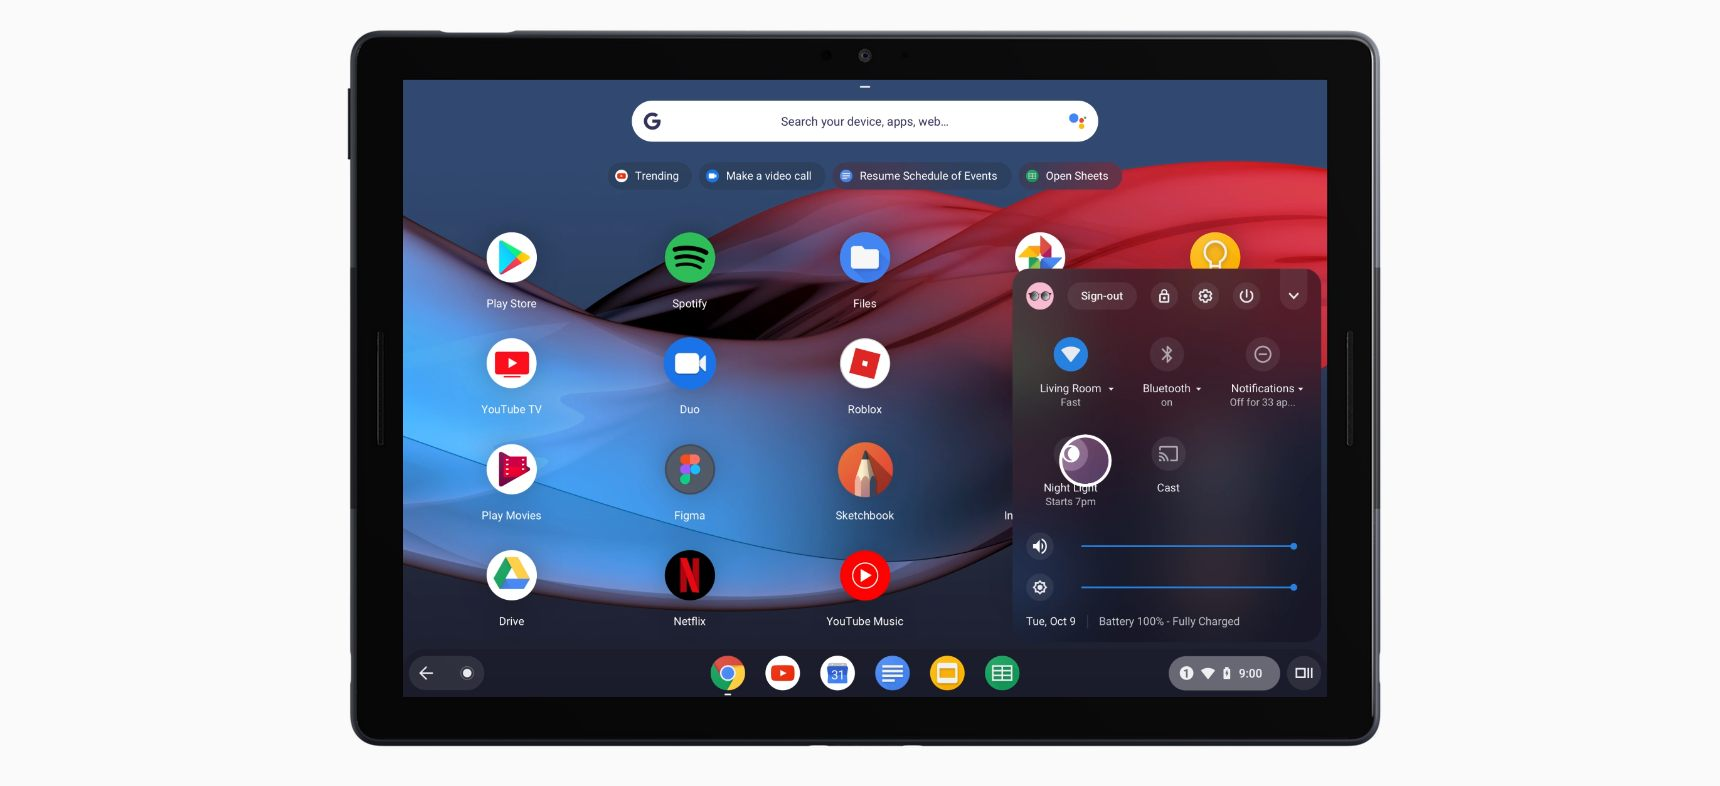 Google Pixel Slate employee hardware division tablet laptop change shift